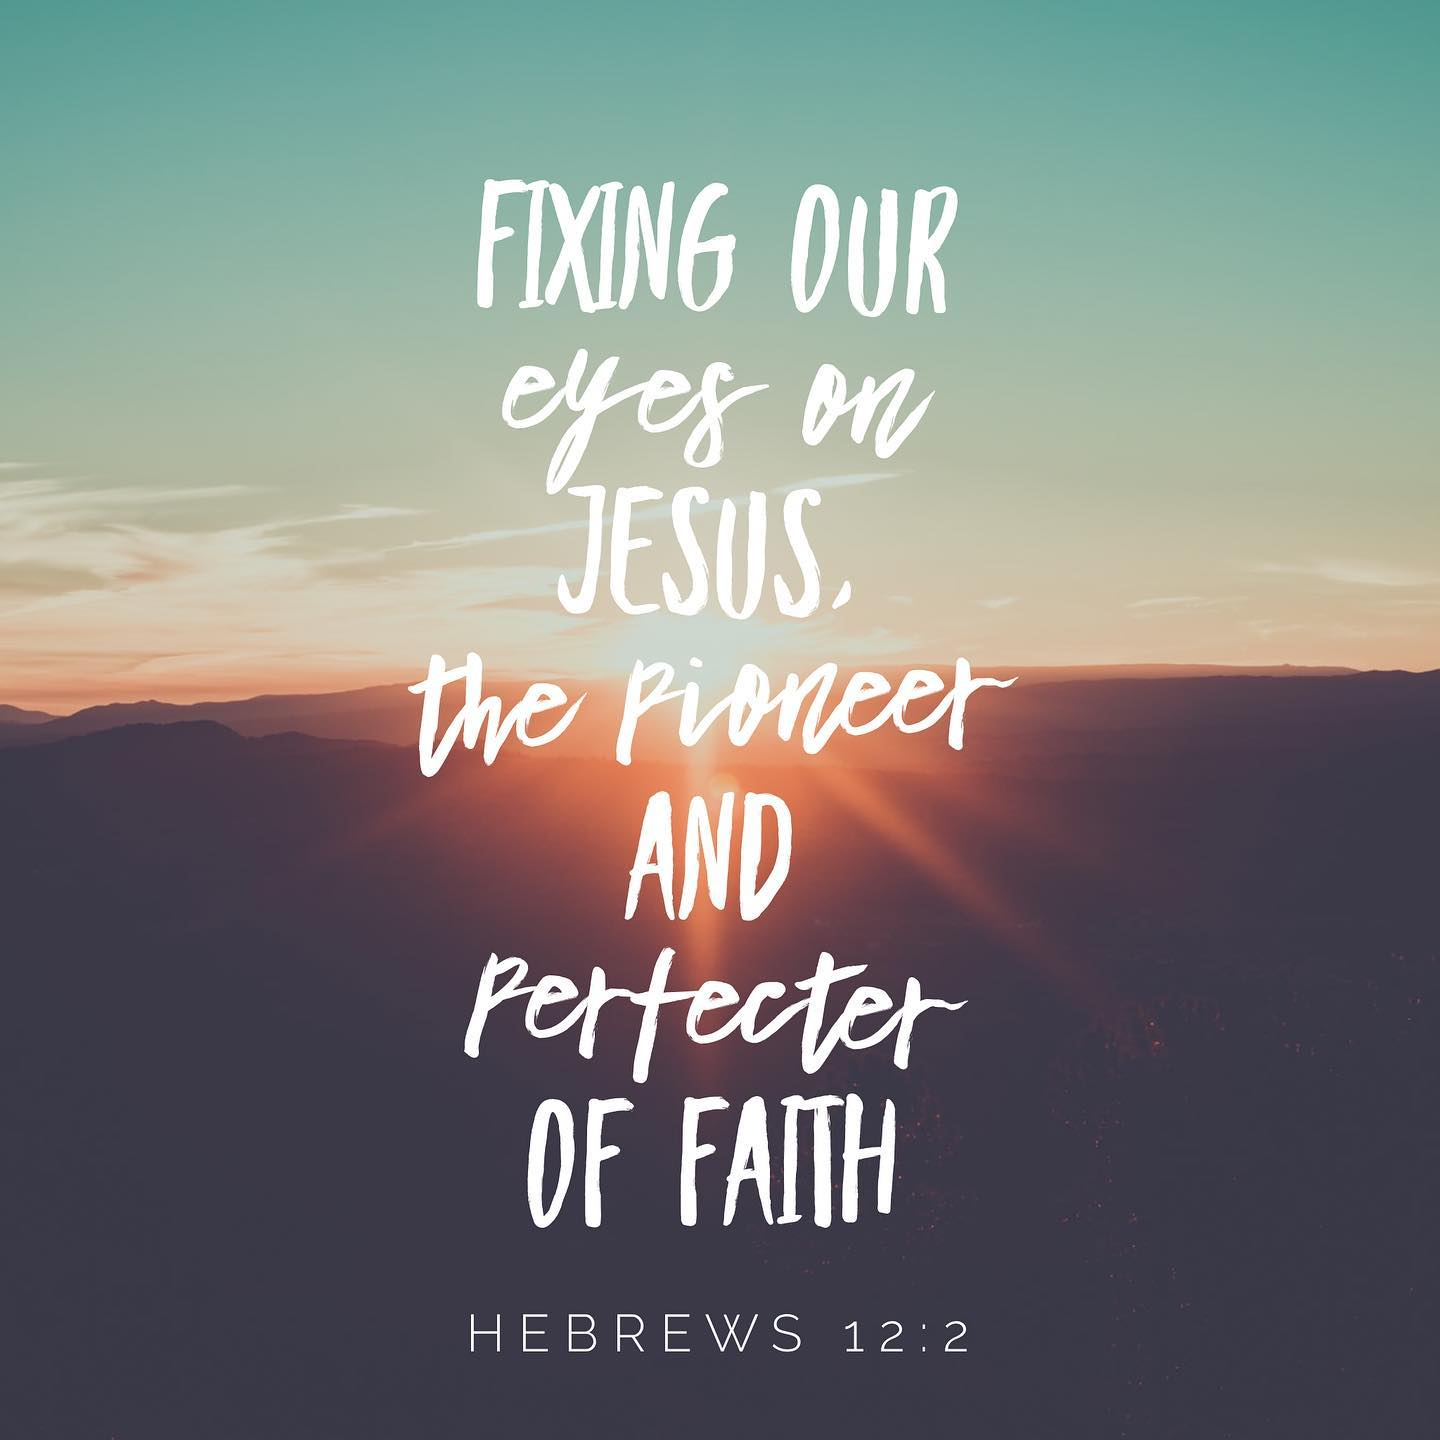 Fixing our Eyes on Jesus. The Pioneer and perfecter of faith. Hebrews 12:2